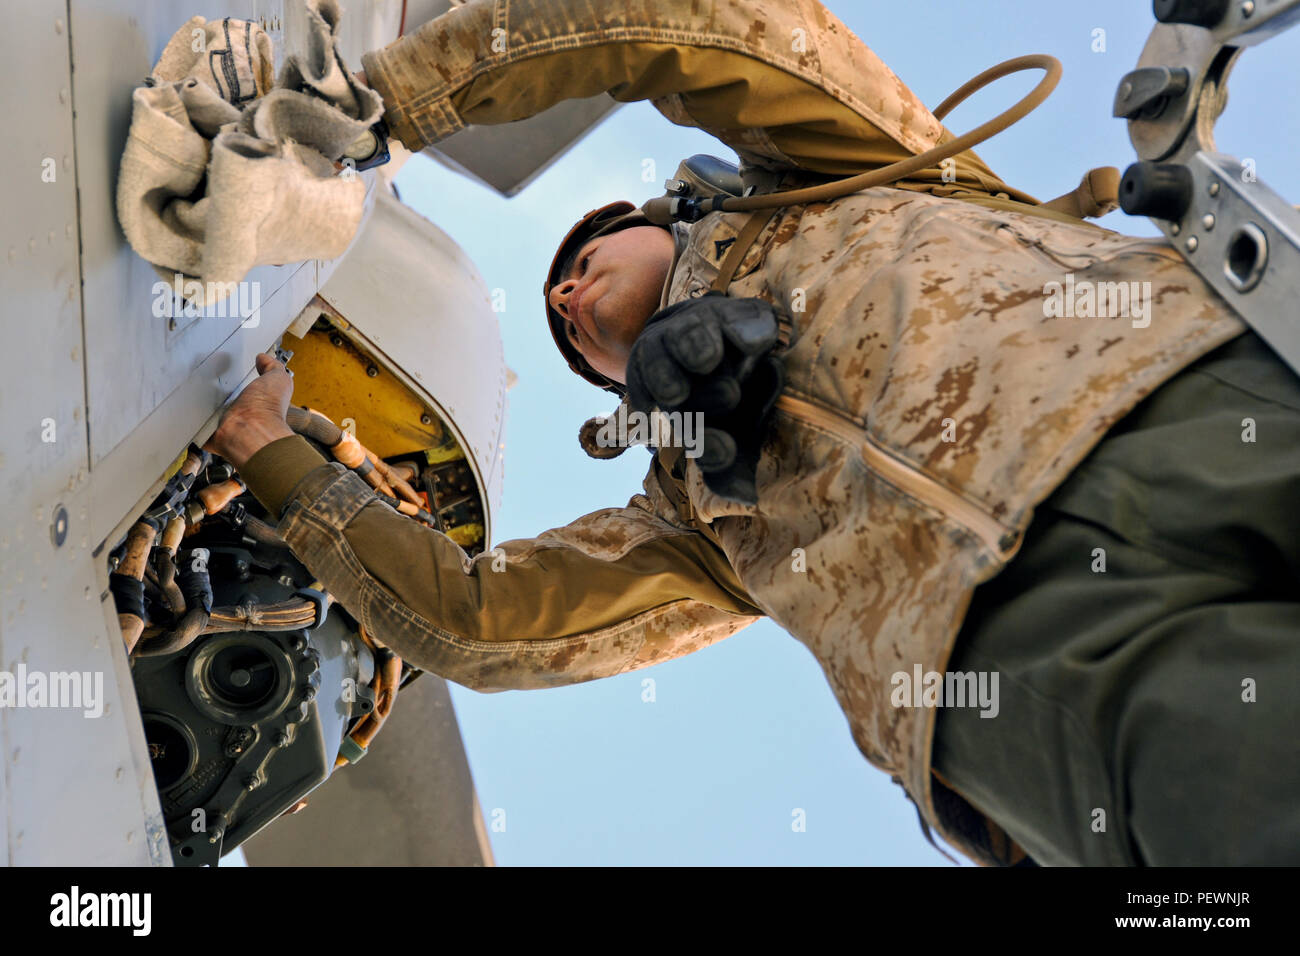 U.S. Marine Lance Cpl. Edgar Santibanez, Marine Medium Tiltrotor Squadron 363, 3rd Marine Aircraft Wing, wipes down the propulsion engine of an MV-22 Osprey during Integrated Training Exercise 2-16 at Marine Corps Air Ground Combat Center, Twentynine Palms, Calif., Jan. 25, 2016. MCAGCC conducts relevant live-fire combined arms, urban operations, and joint/coalition level integration training that promote operational forces' readiness. (U.S. Air Force photo by Tech. Sgt. Joselito Aribuabo/Released) - Stock Image